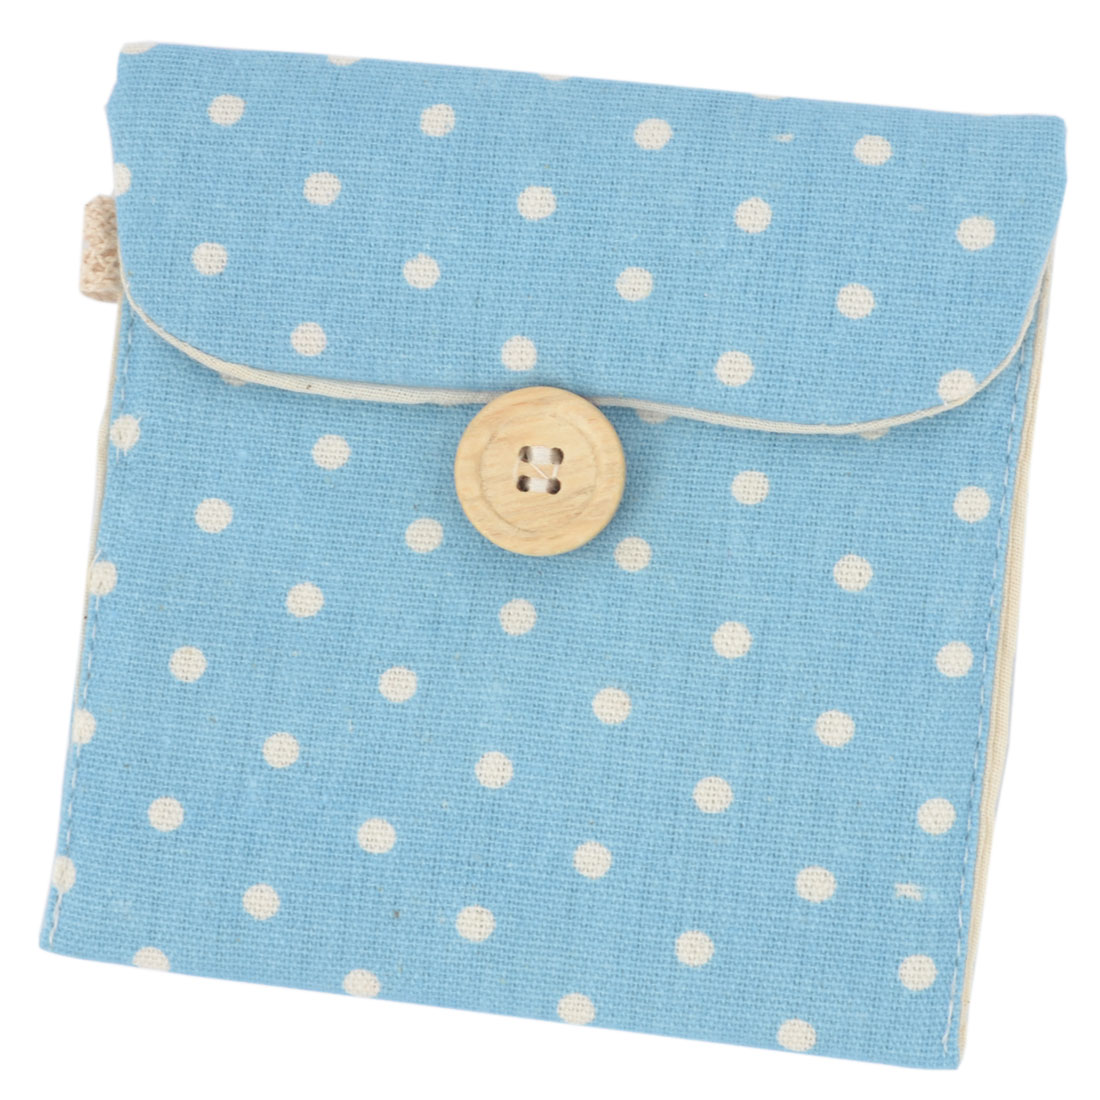 Women Soft White Polka Dots Sanitary Pad Holder Bag Blue